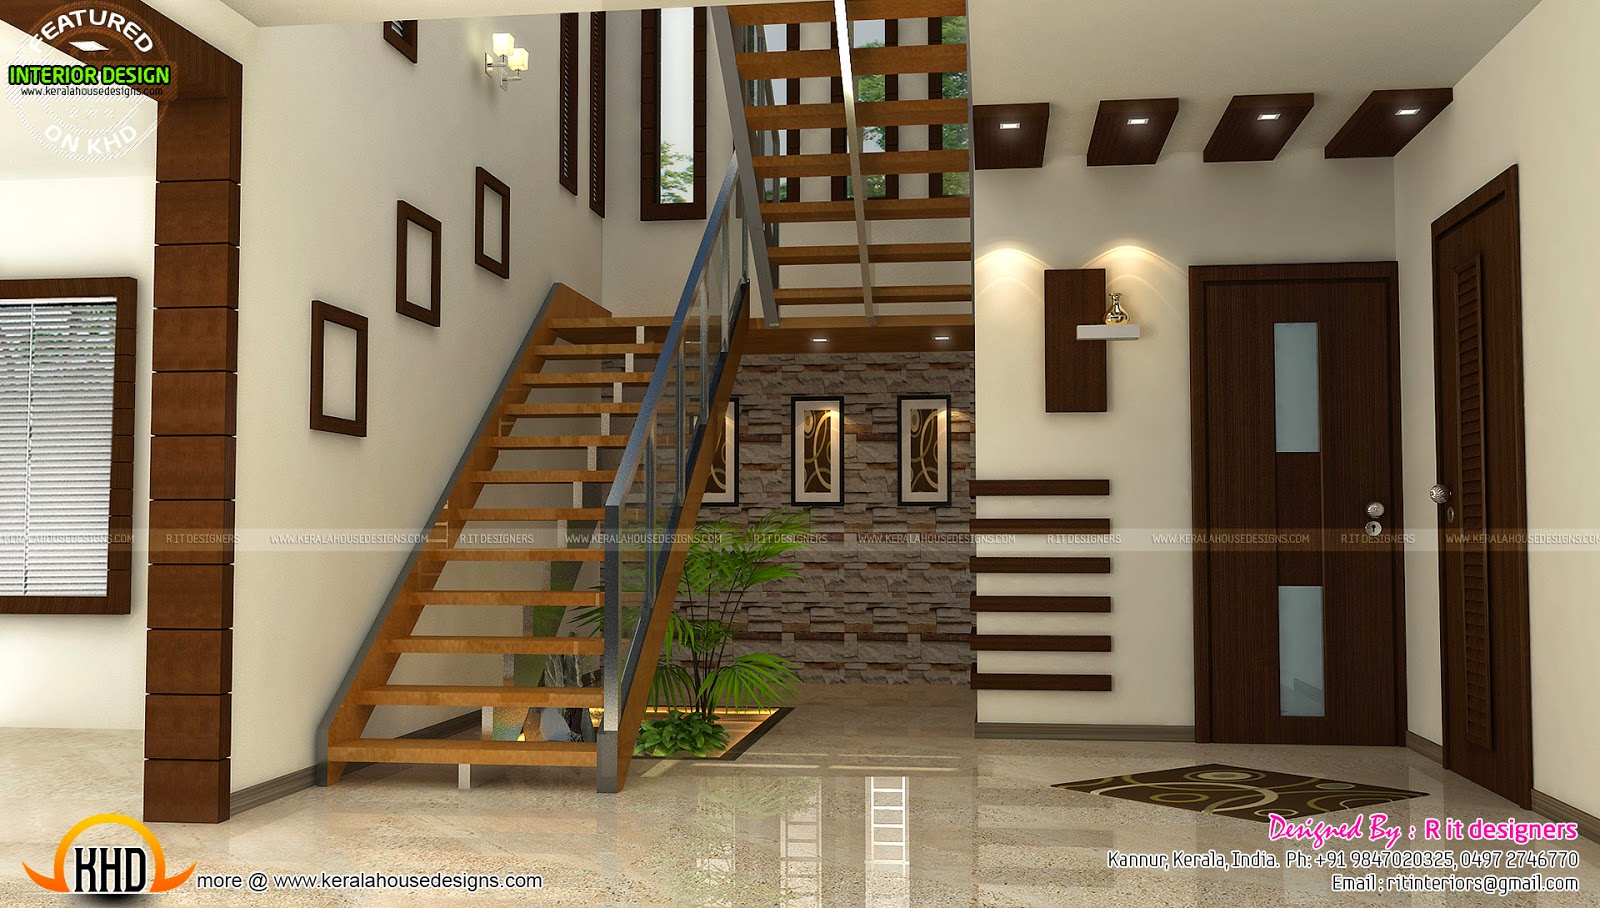 Staircase bedroom dining interiors kerala home design - Kerala home interior design plans ...